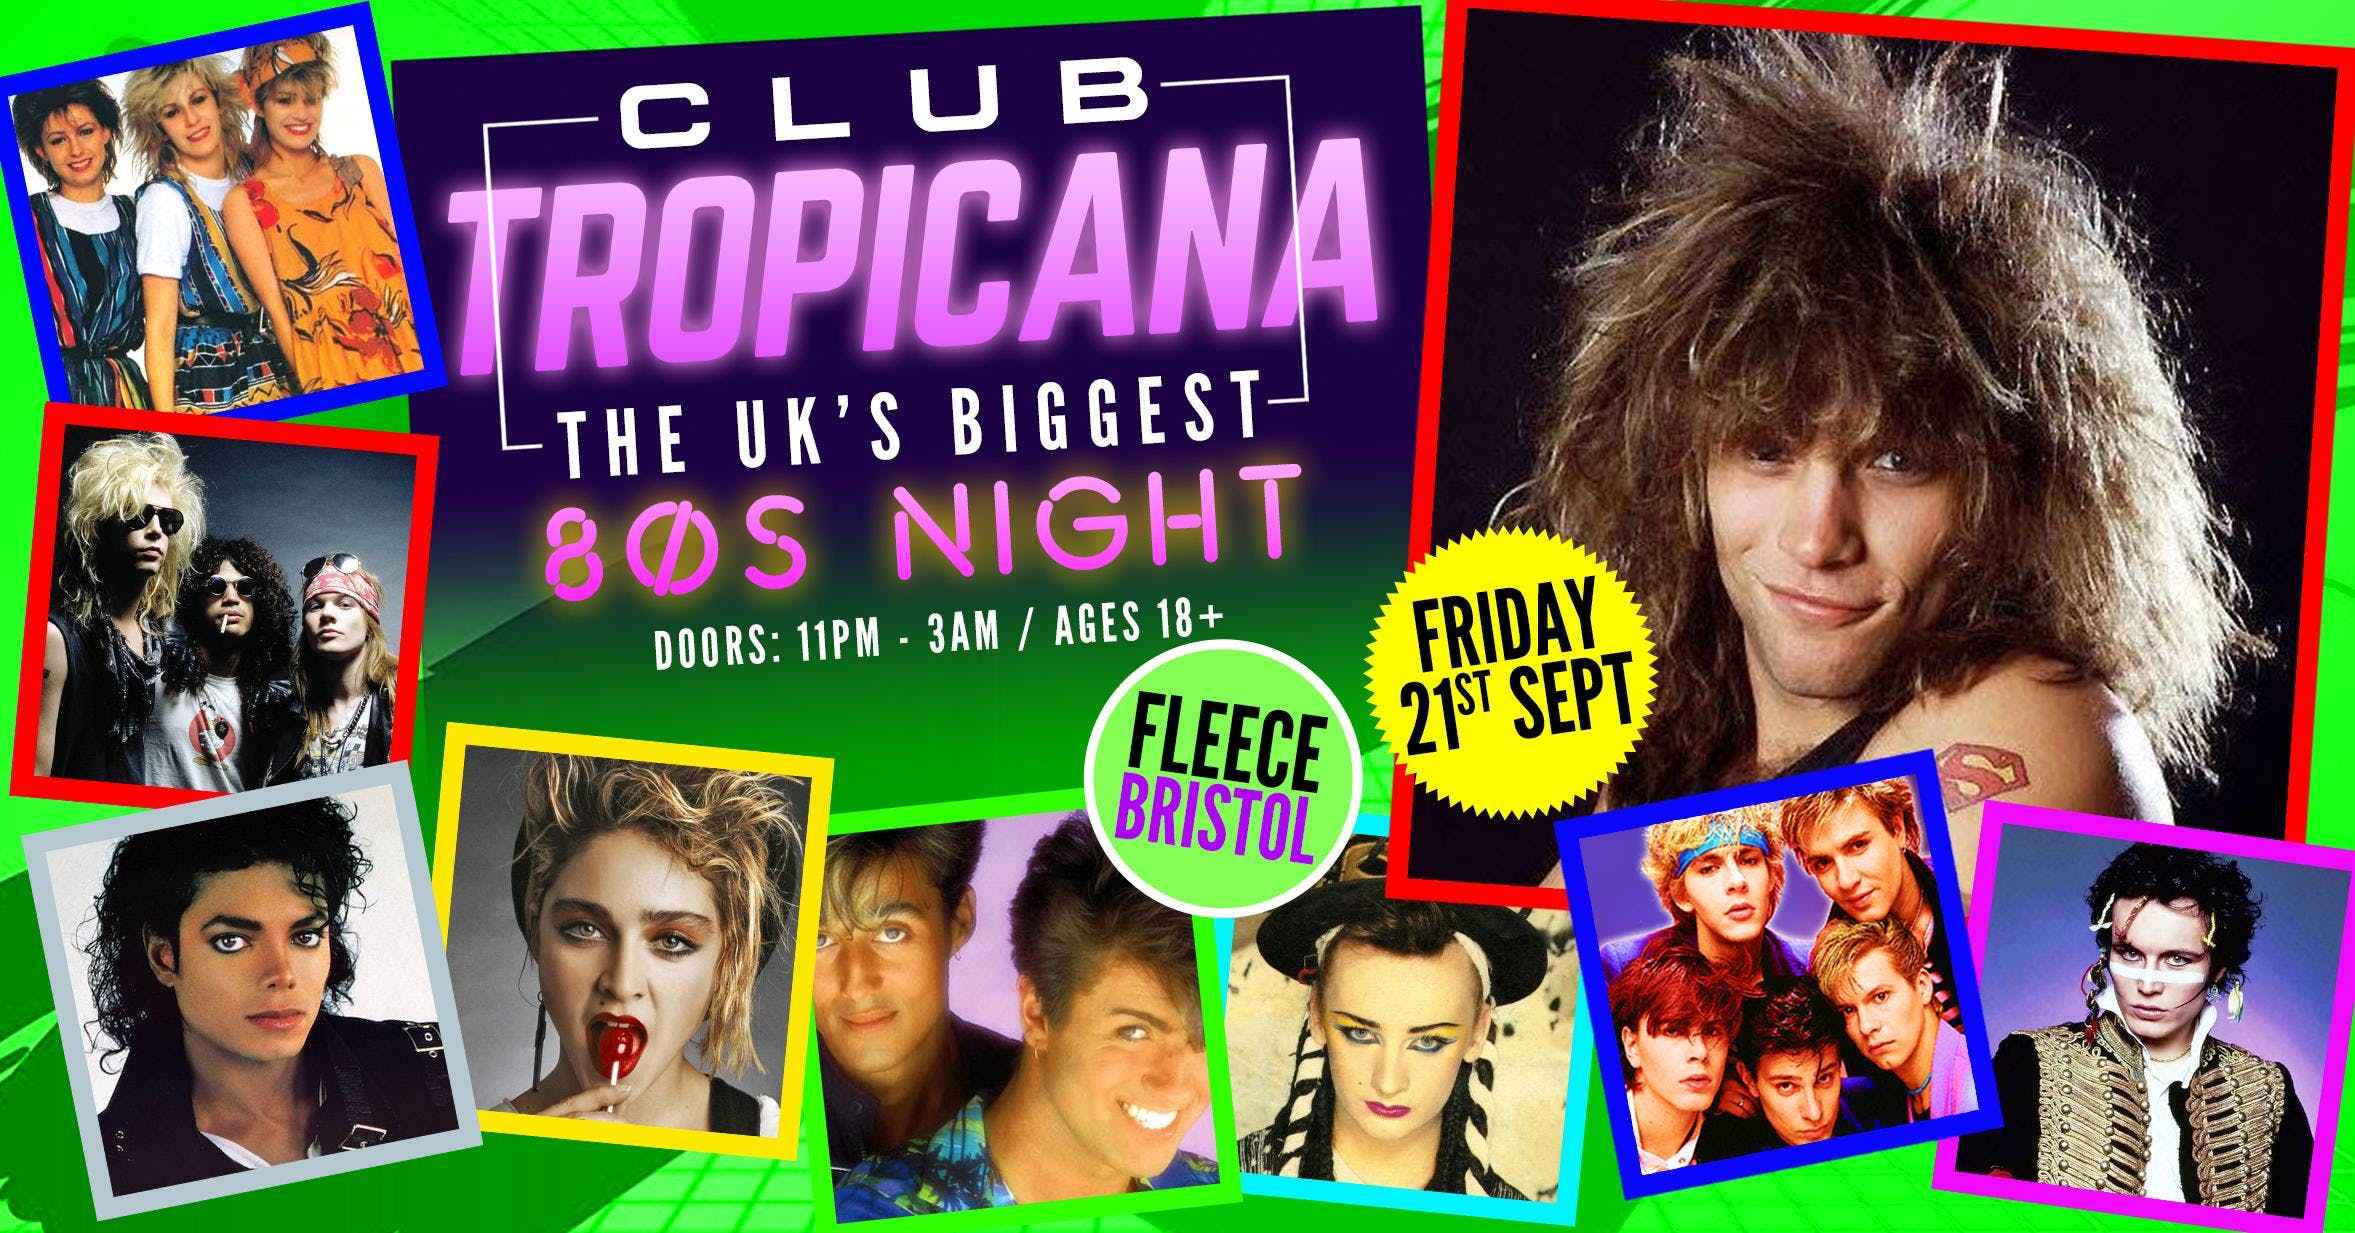 Club Tropicana - The UK's Biggest 80s Night!